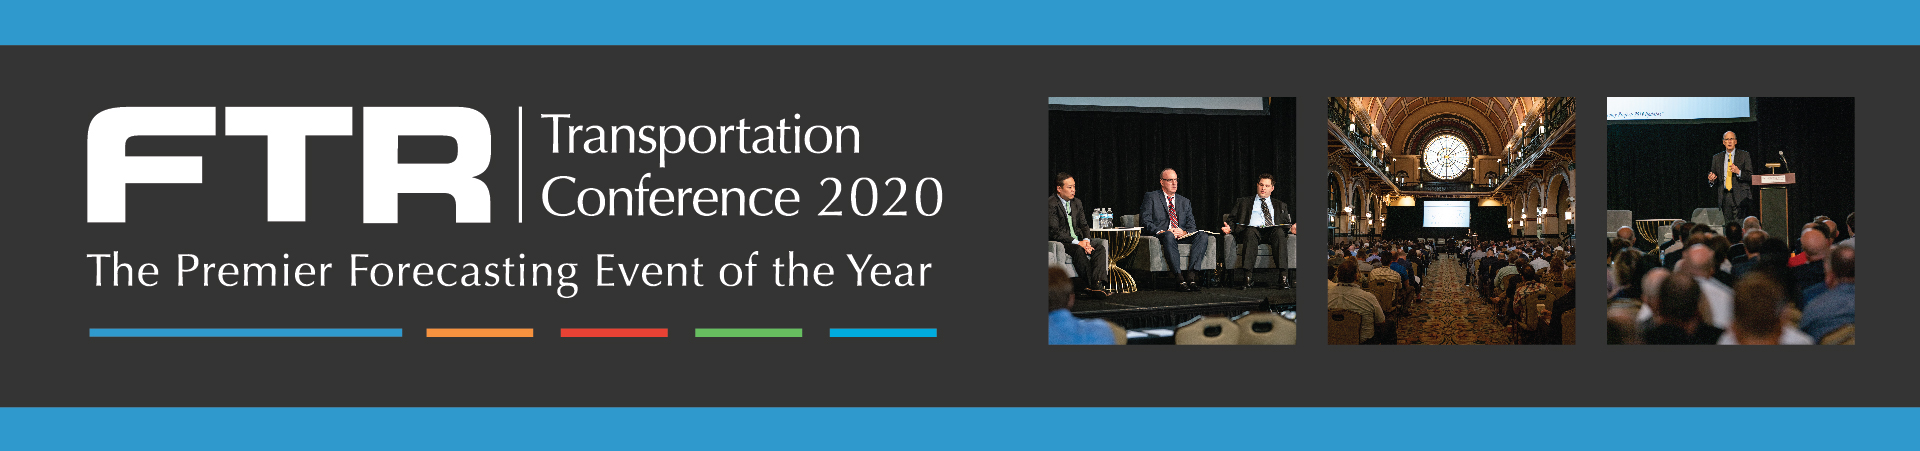 FTR Transportation Conference | The Premier Forecasting Event of the Year